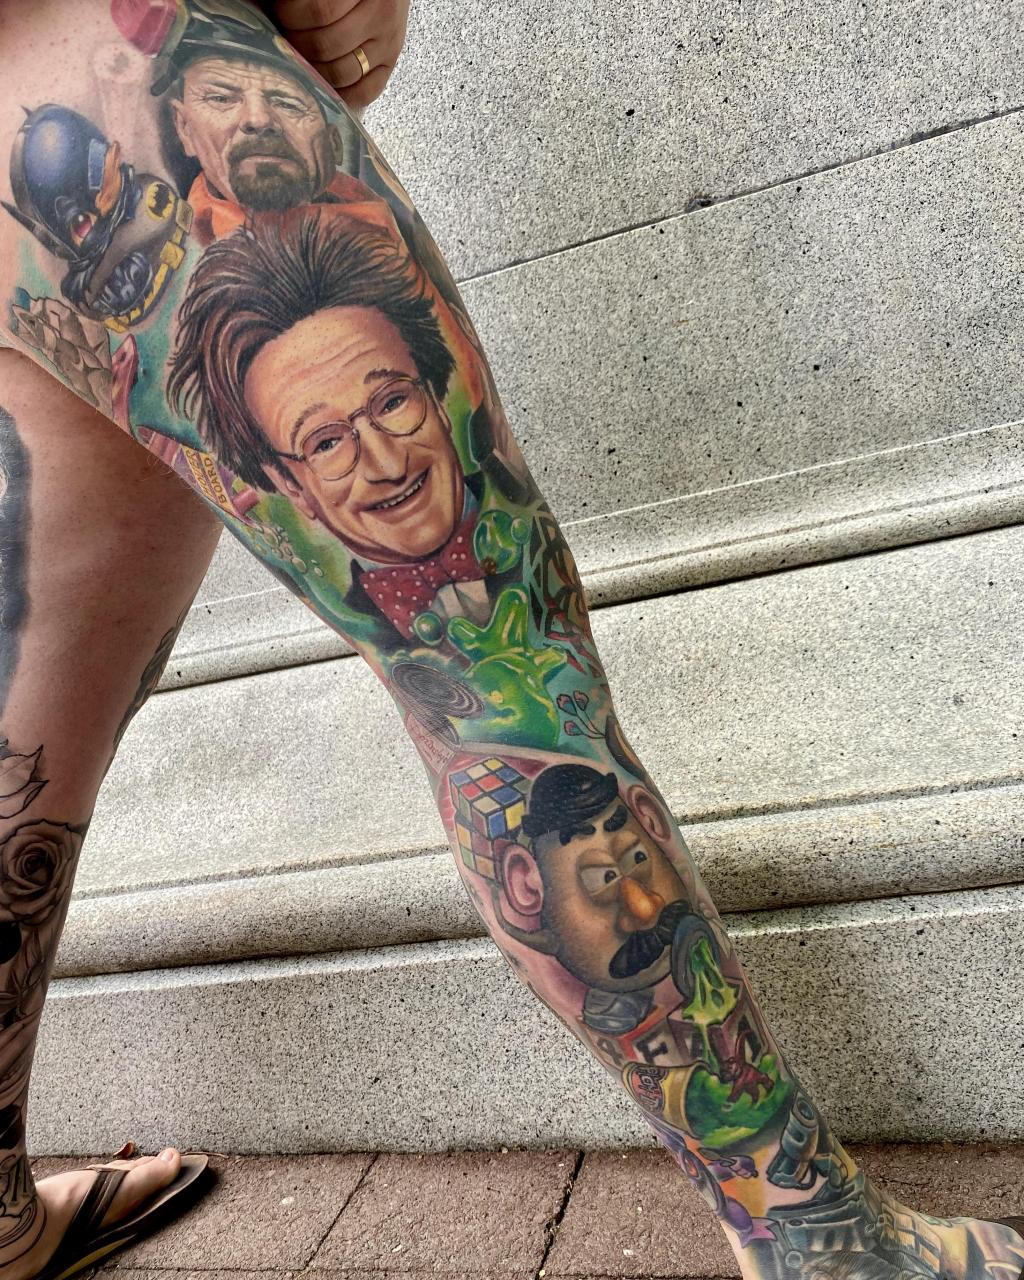 Multi-artist collaborative movie/tv leg sleeve. Check out @alex_hall on Insta for Artists